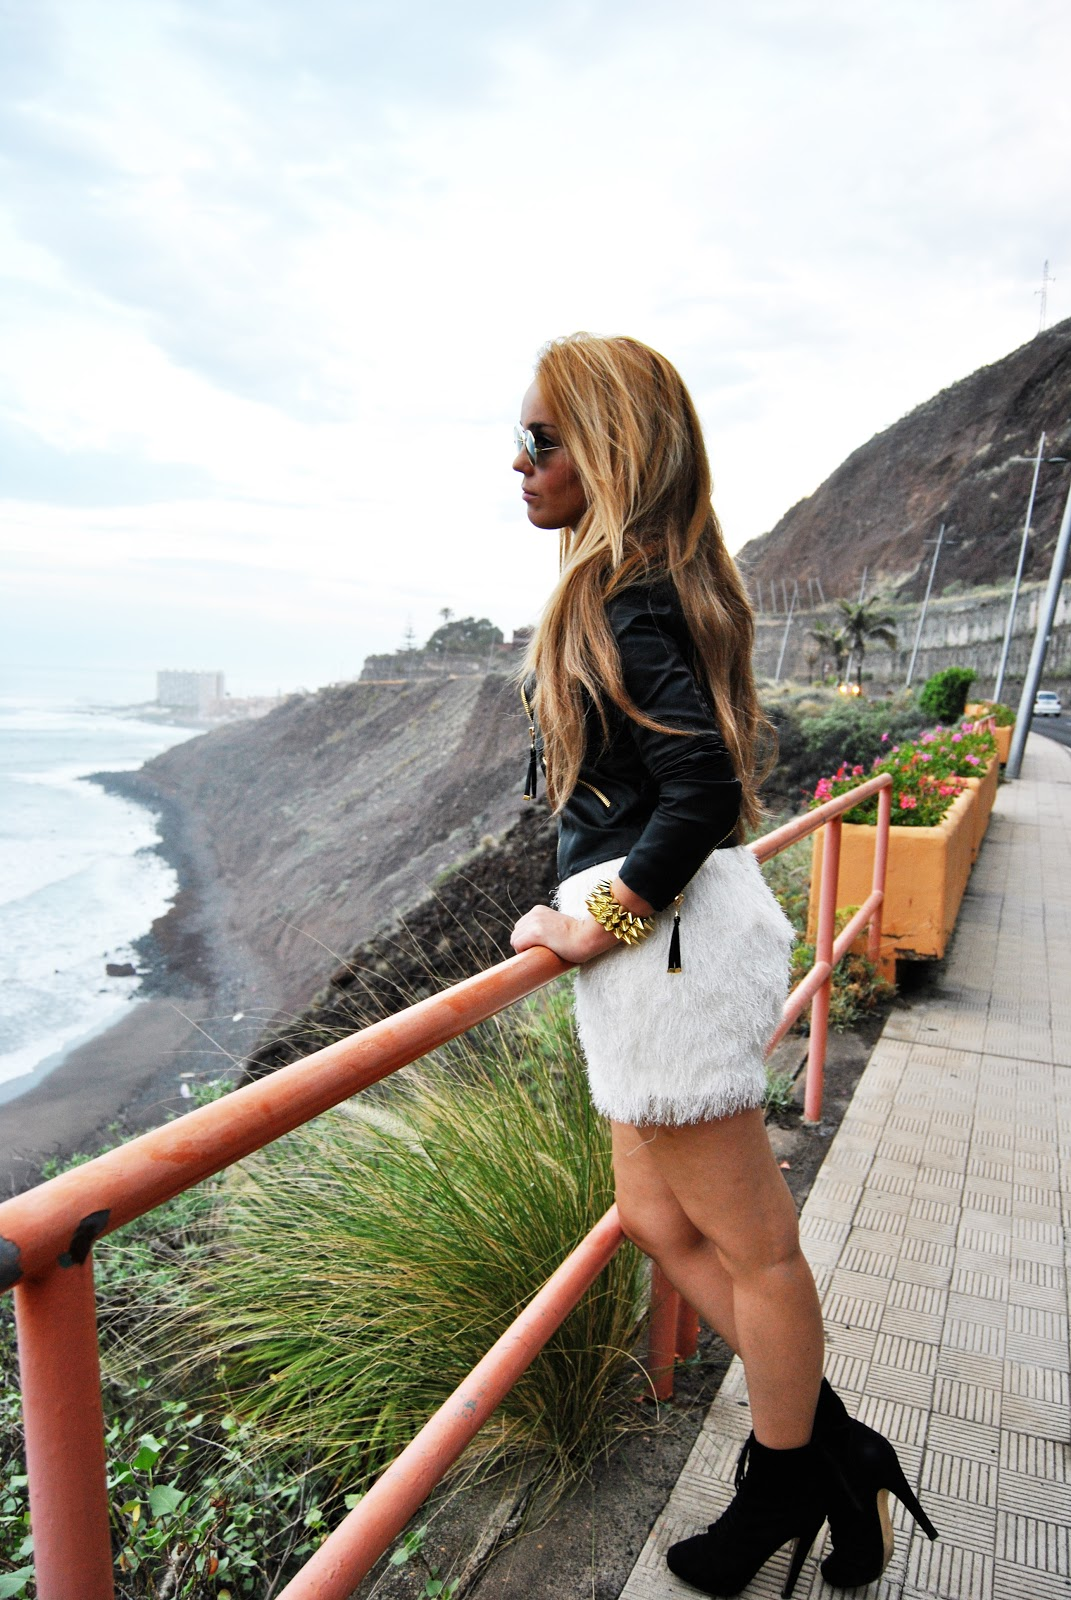 nery hdez, feathers skirt, grunge look, vintage sunglasses